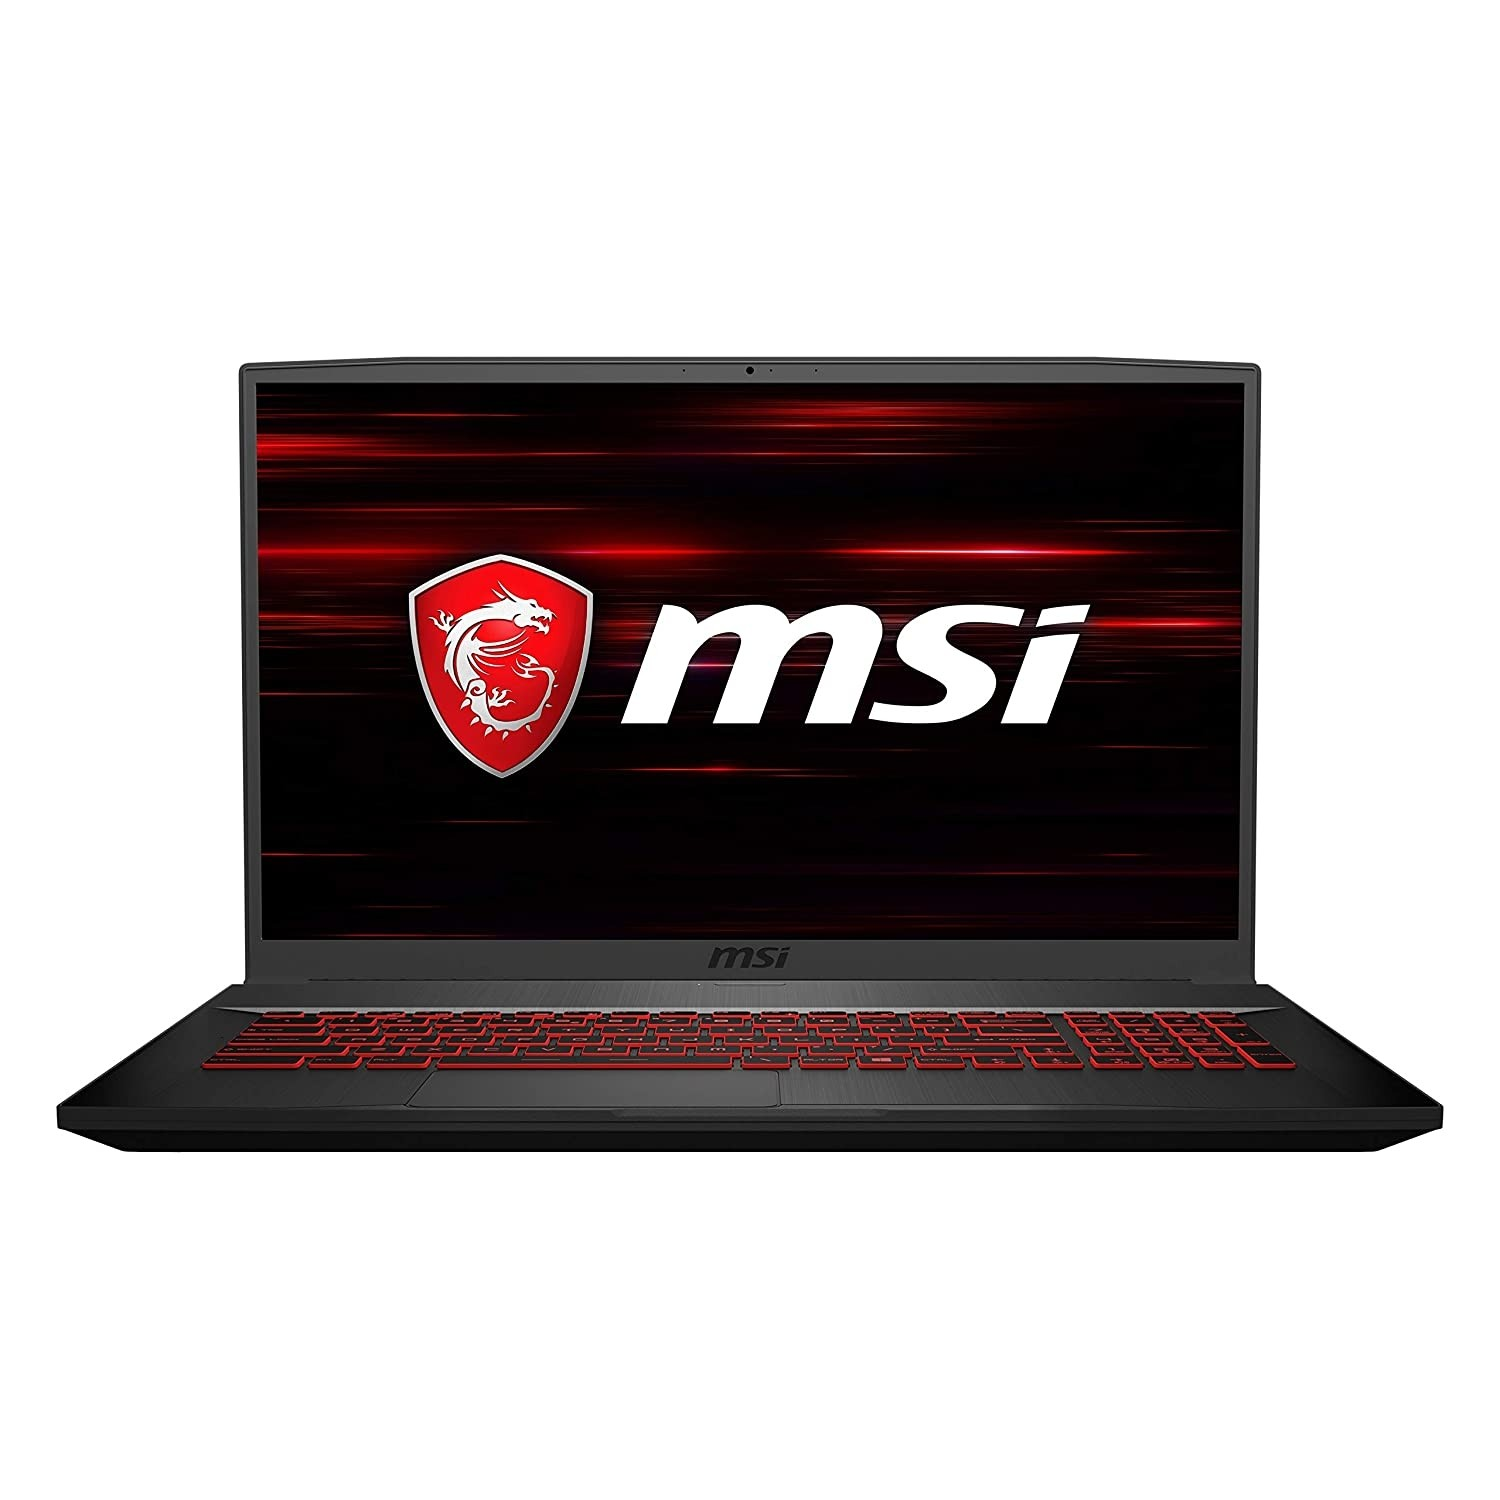 Refurbished laptops & desktops - MSI GF75 Thin 8RD-076IN 2019 17.3-inch Gaming Laptop (8th Gen Core i7-8750H/8GB/128GB NVMe M.2 SSD/1TB/Windows 10 Home/4GB Graphics/2.2 Kg), Black